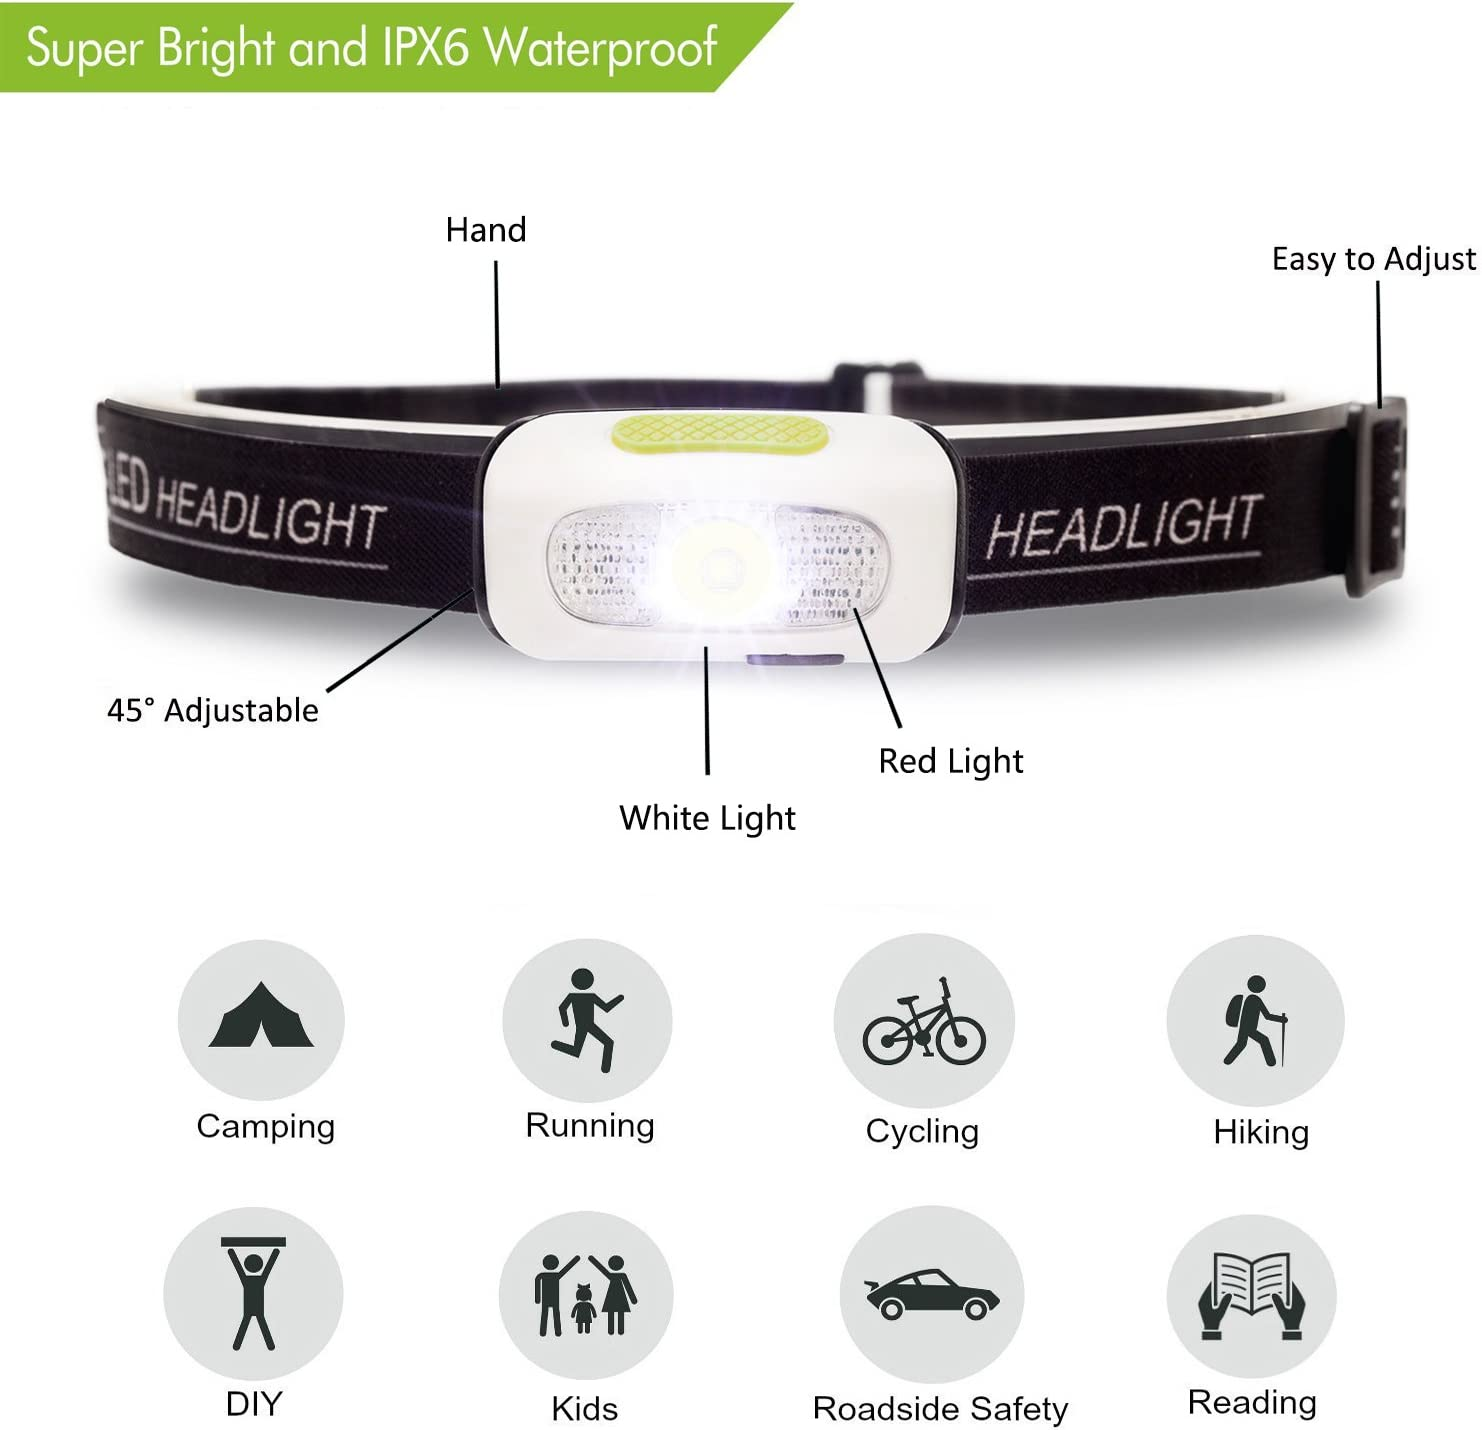 USB Rechargeable LED Headlamp Head Torch HFAN Headlight 1X White 2X Red...